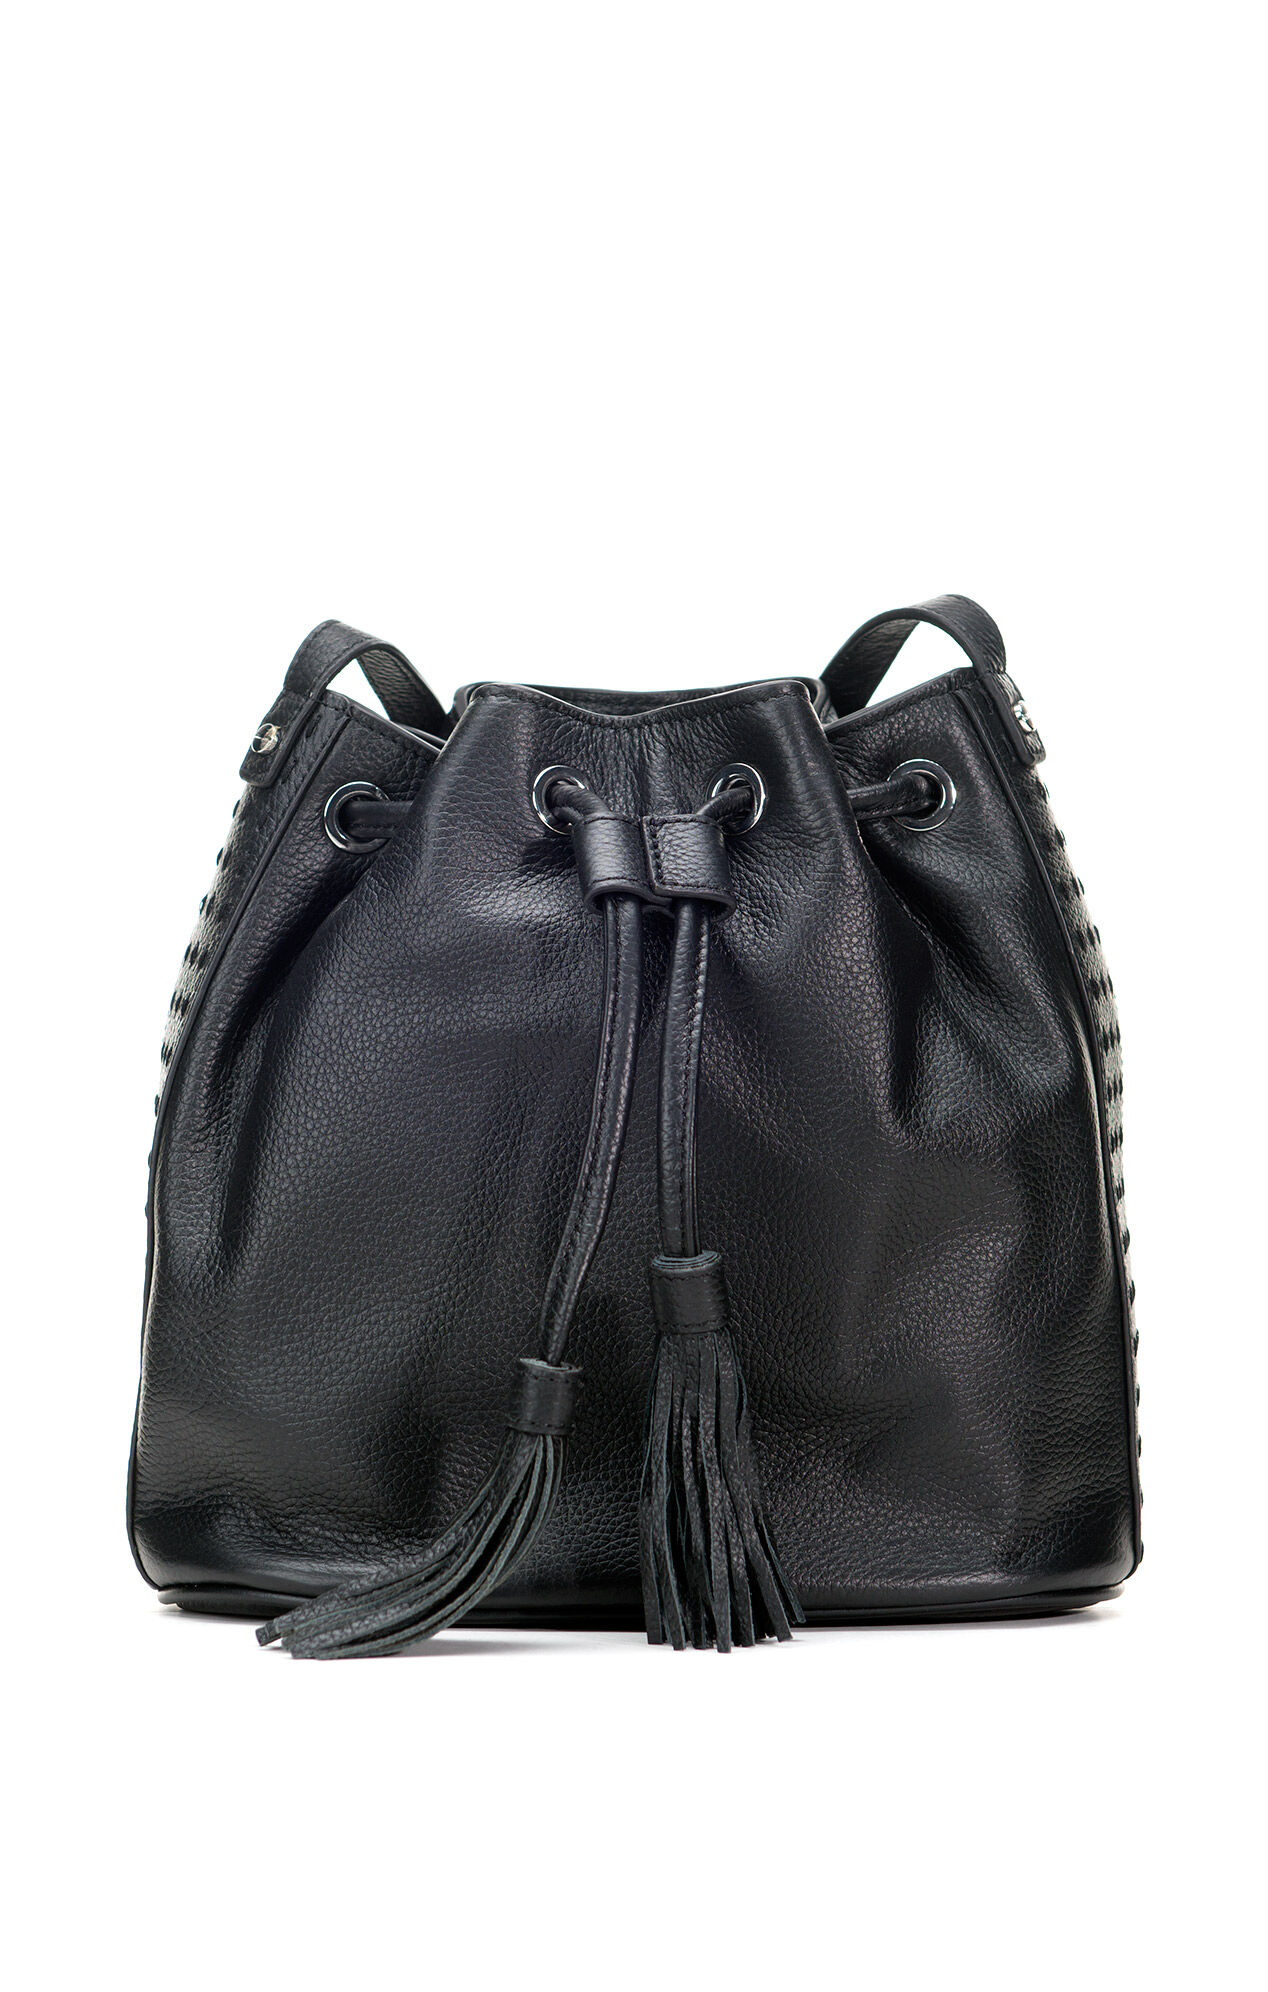 BCBGMAXAZRIA Kaycie Drawstring Bucket Bag - Black